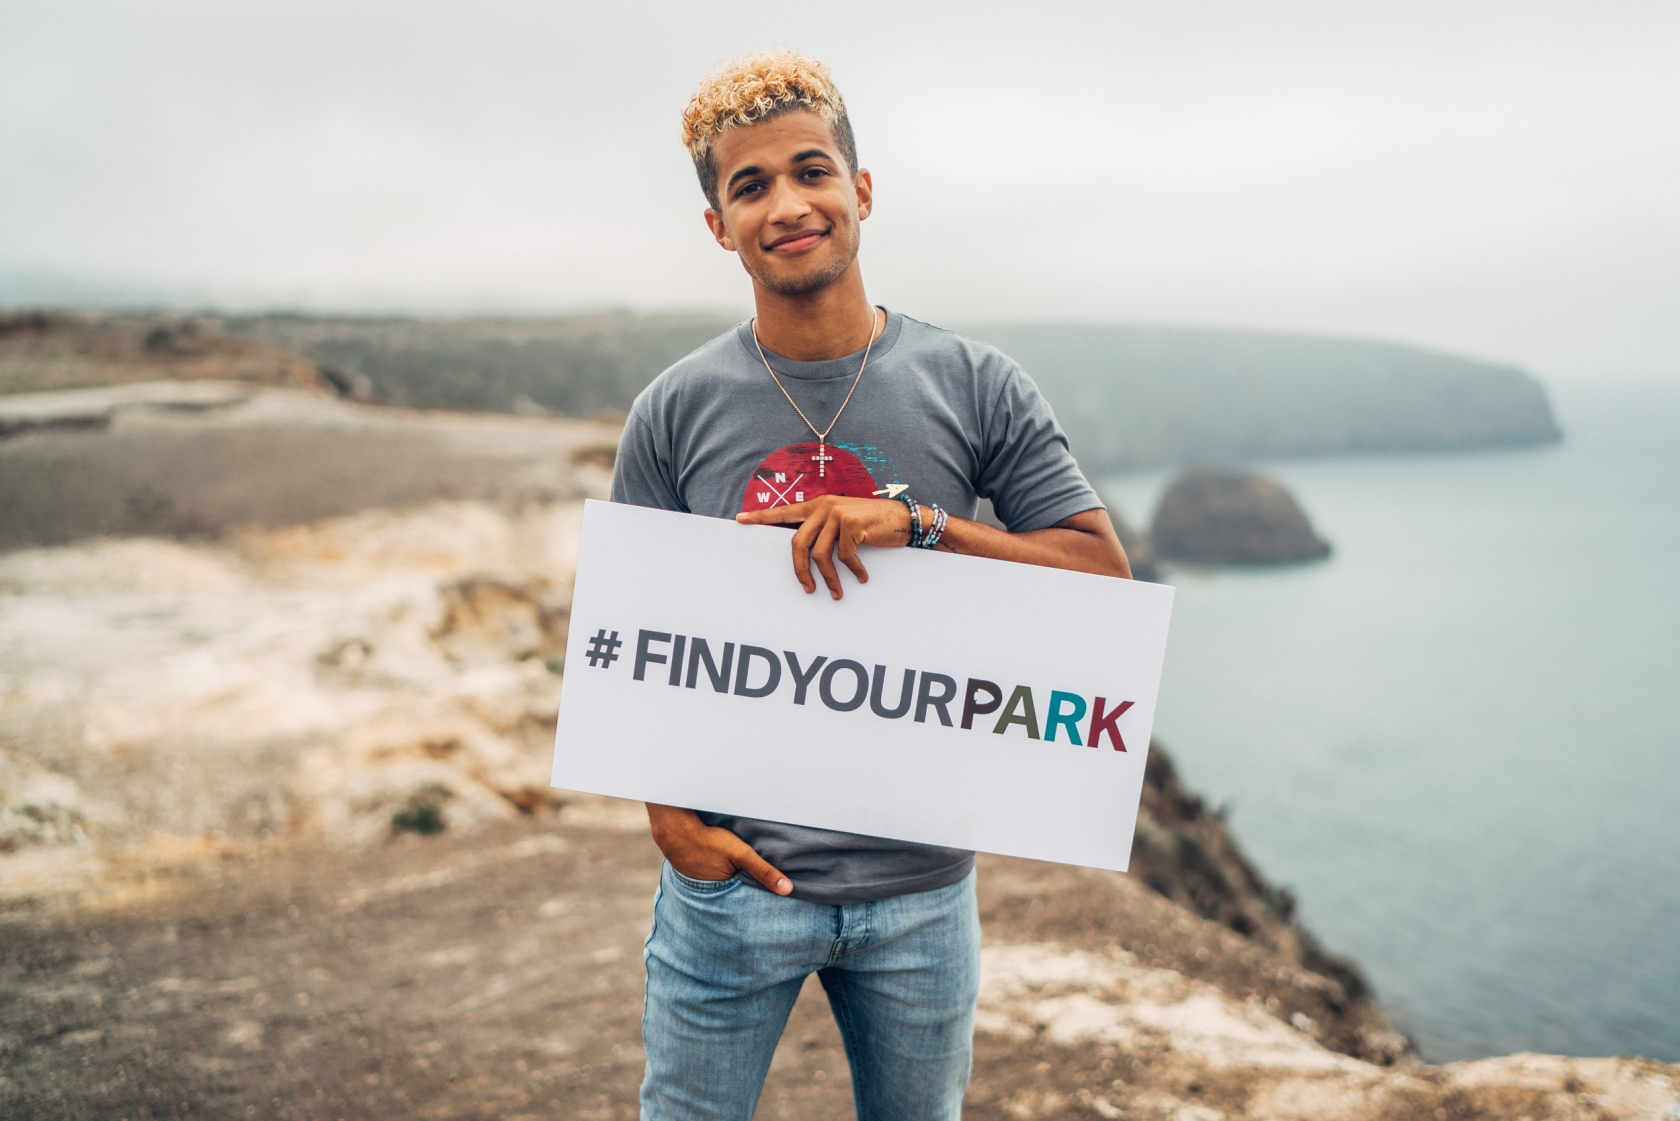 Jordan Fisher at Channel Islands National Park